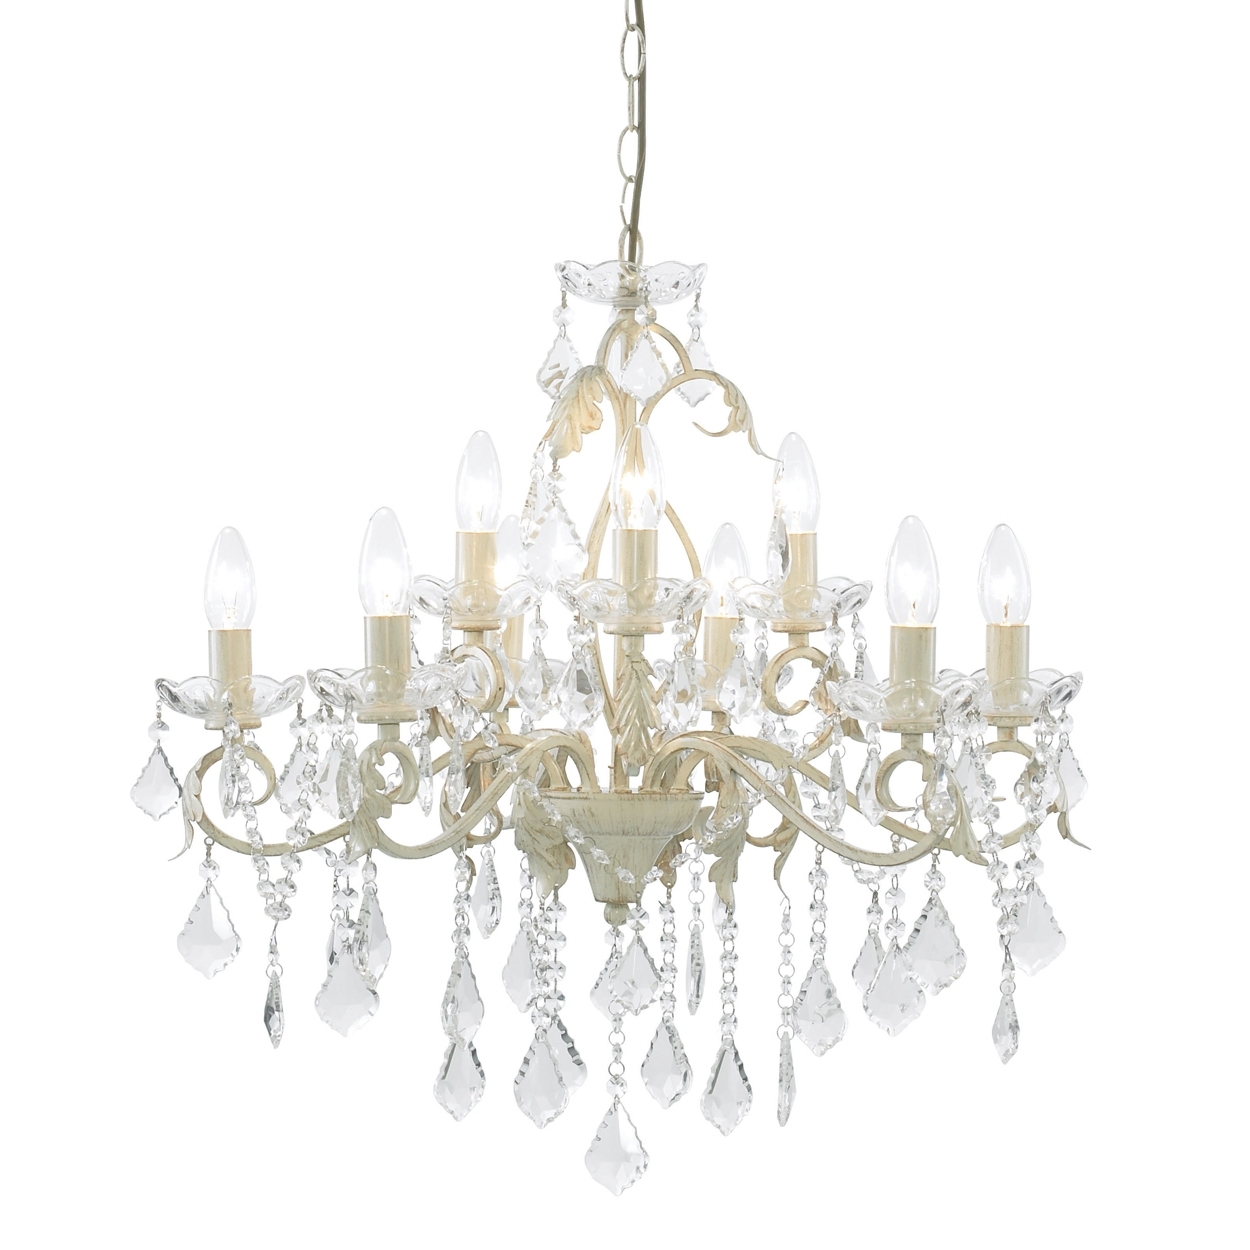 Most Current Chandeliers Design : Magnificent Cream And Gold Crystal Chandelier Intended For Large Cream Chandelier (View 12 of 15)